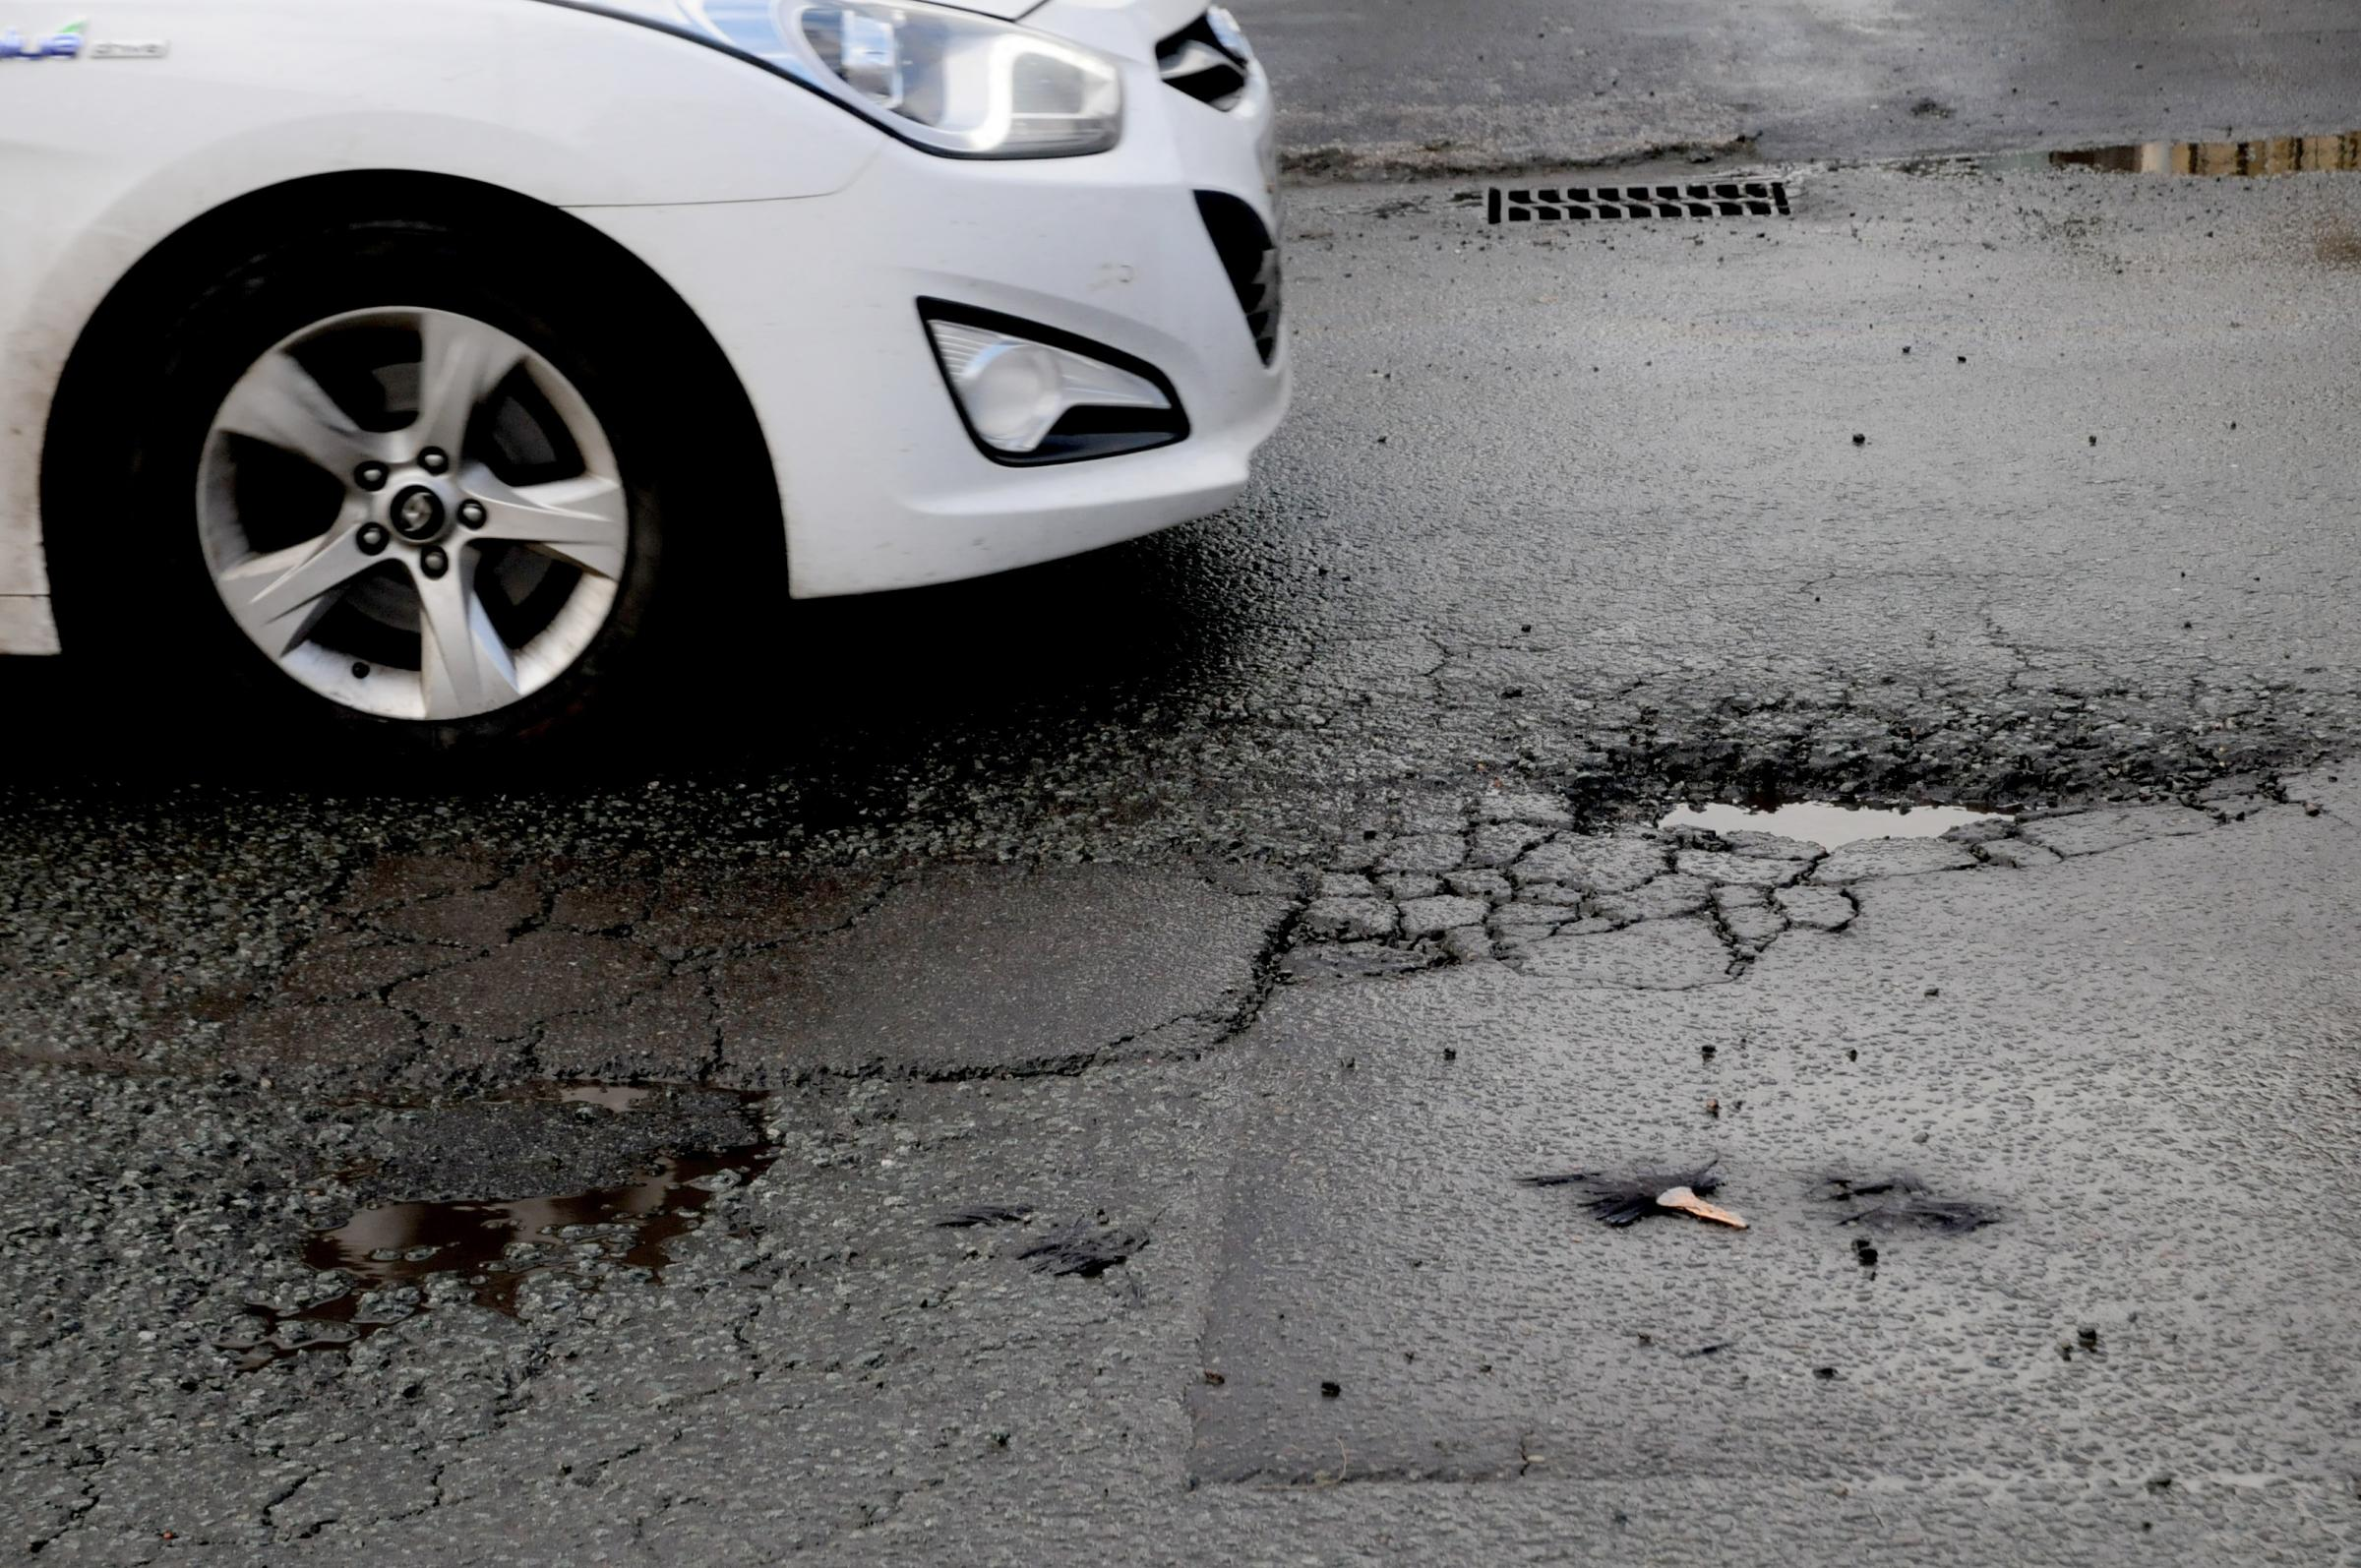 Cash boost to fix potholes – but councillor warns roads might never be restored